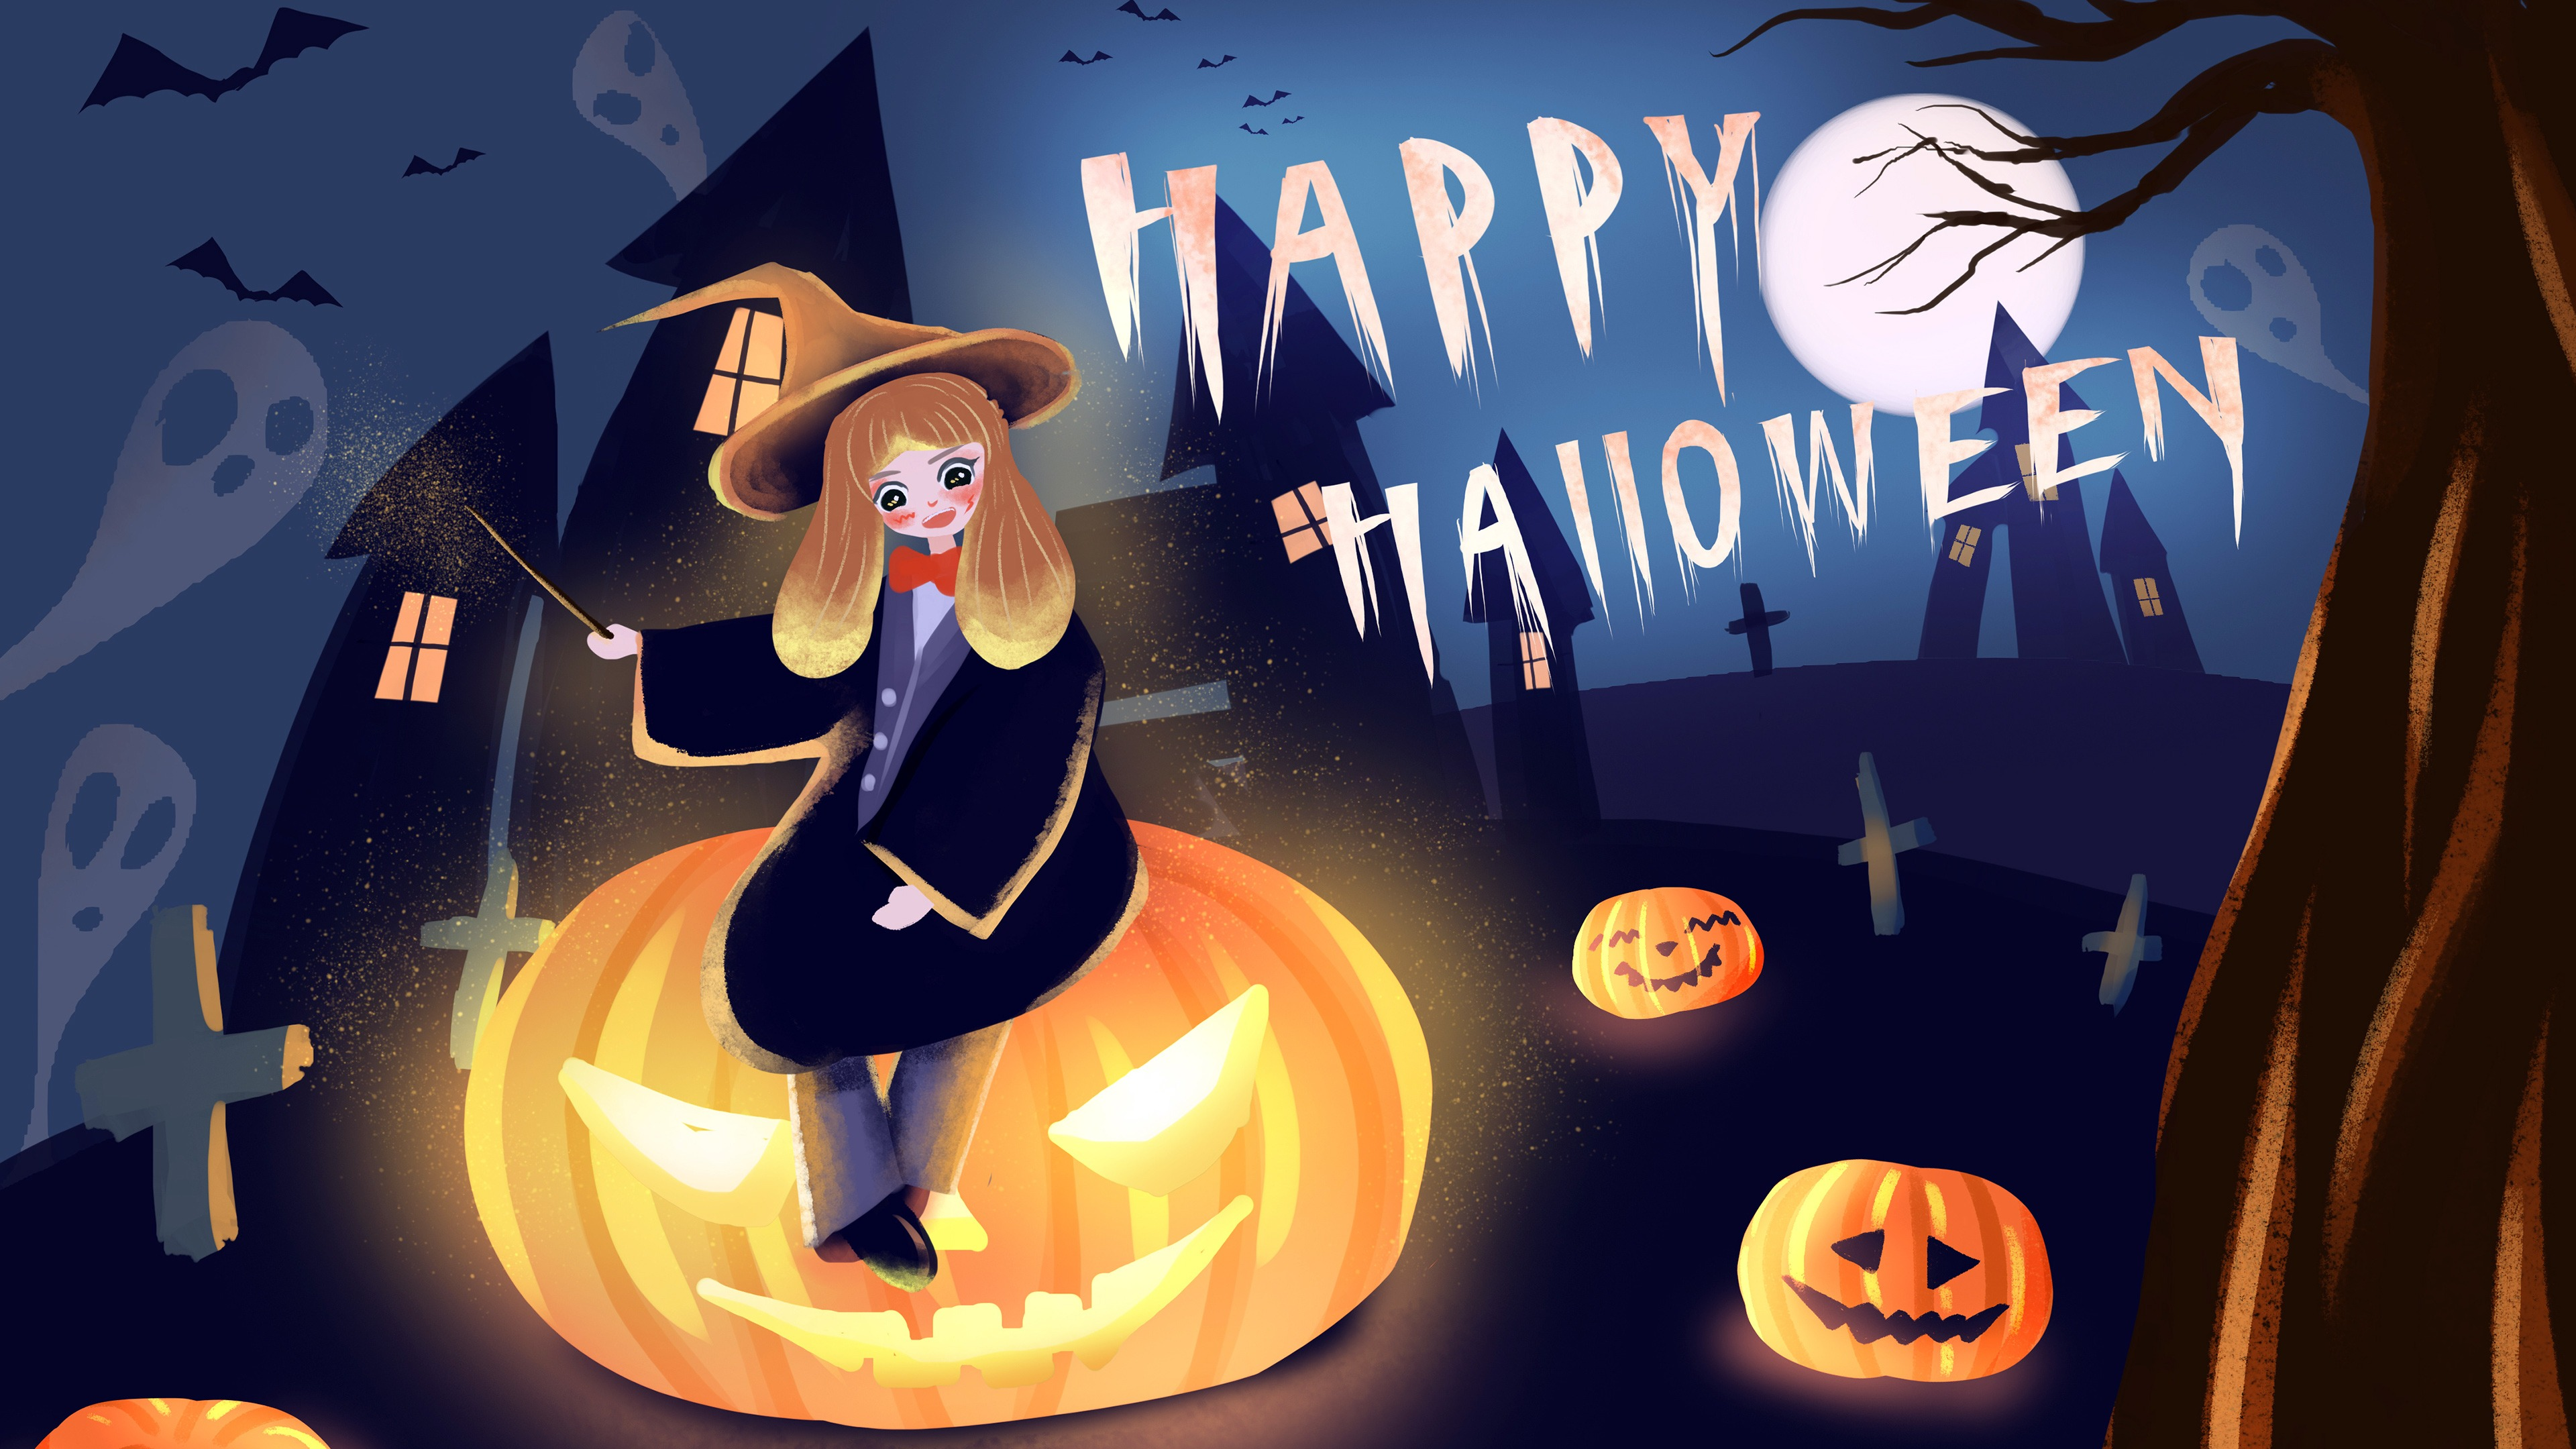 Happy Halloween Girl Pumpkin illustration 4k Wallpaper HD 3840x2160